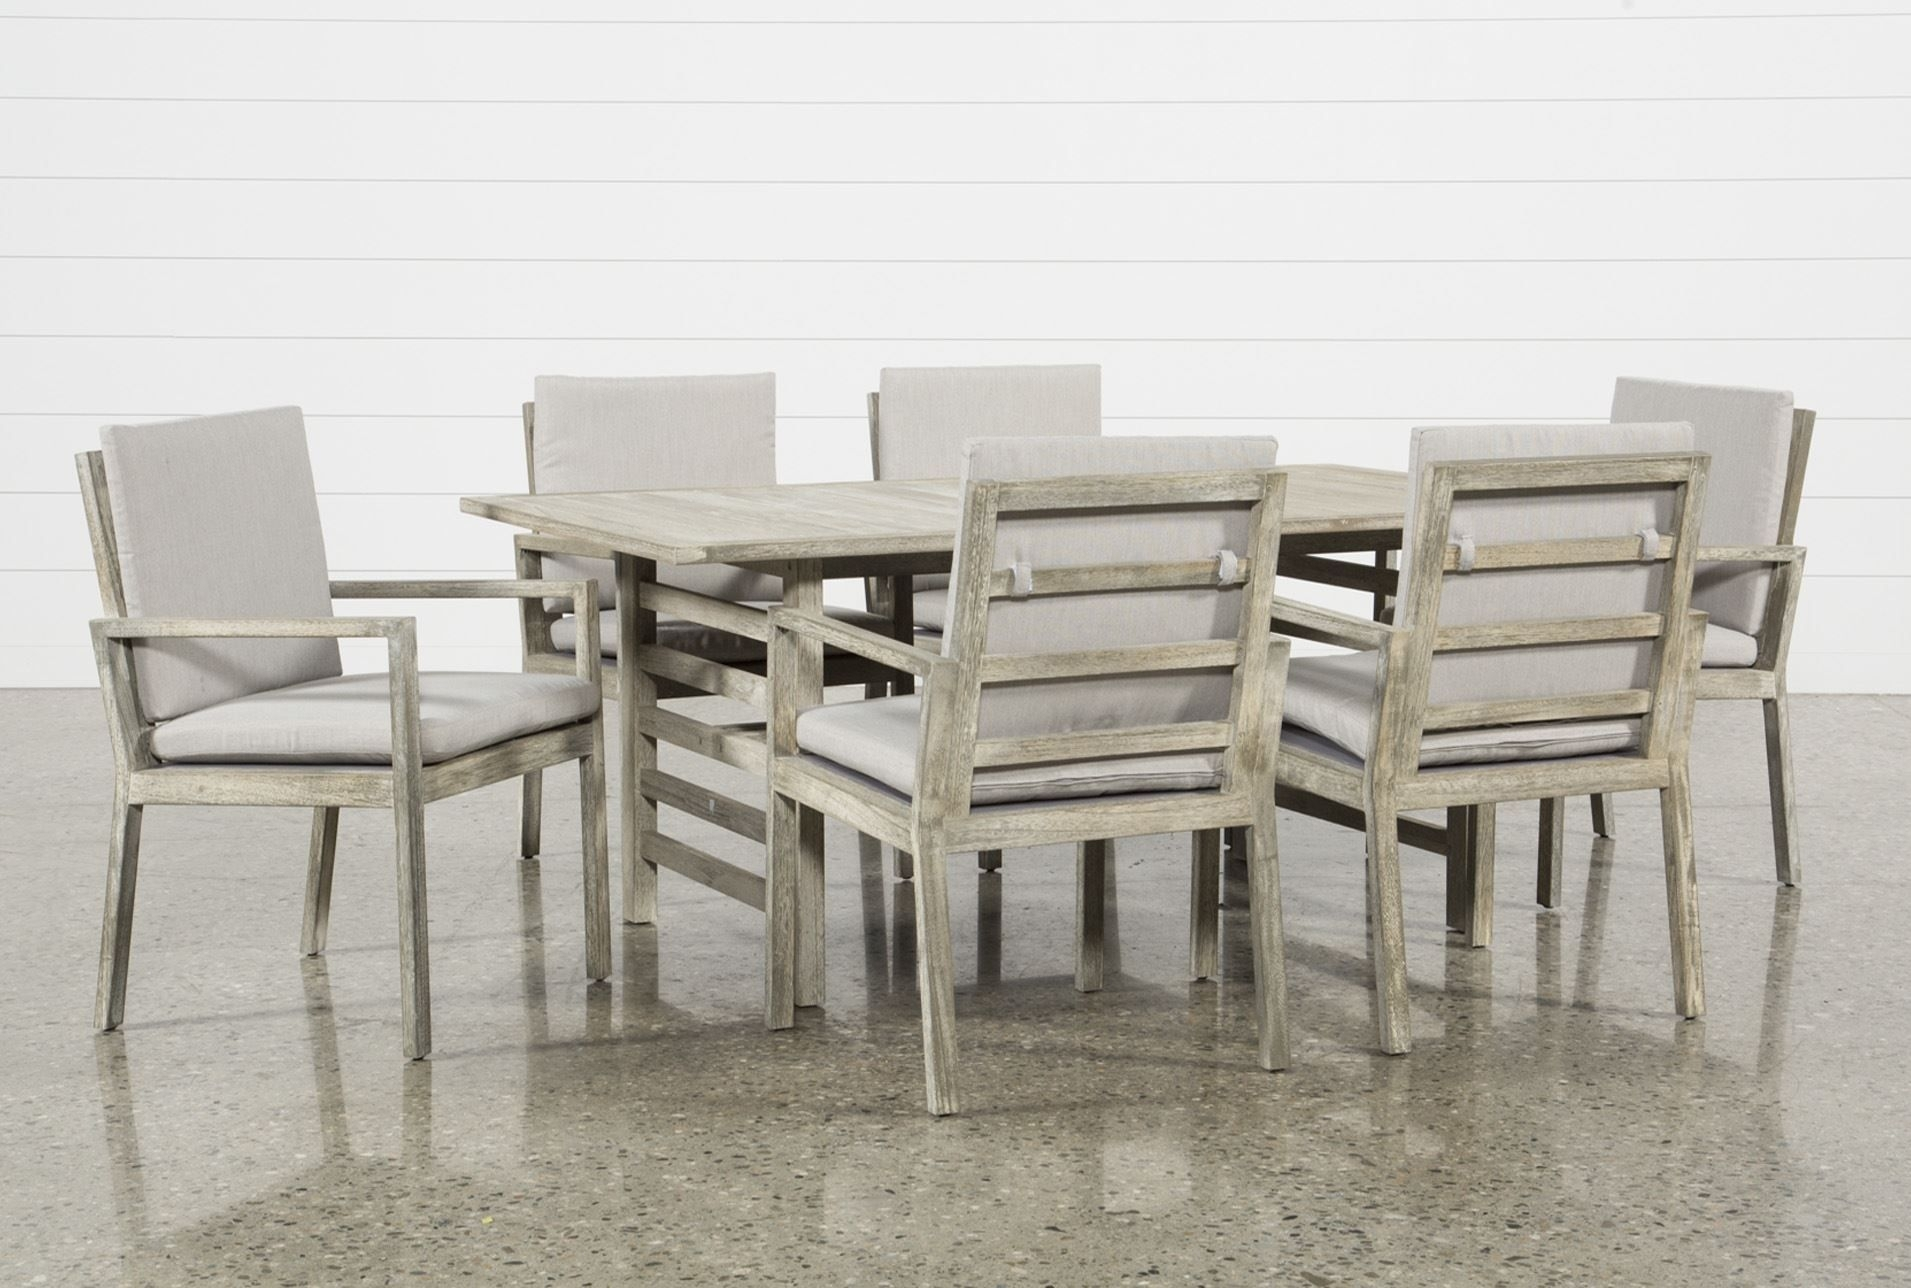 Outdoor Pompeii 7 Piece Dining Set, Grey | Pompeii And Products With Regard To Most Popular Caira 7 Piece Rectangular Dining Sets With Diamond Back Side Chairs (View 6 of 20)